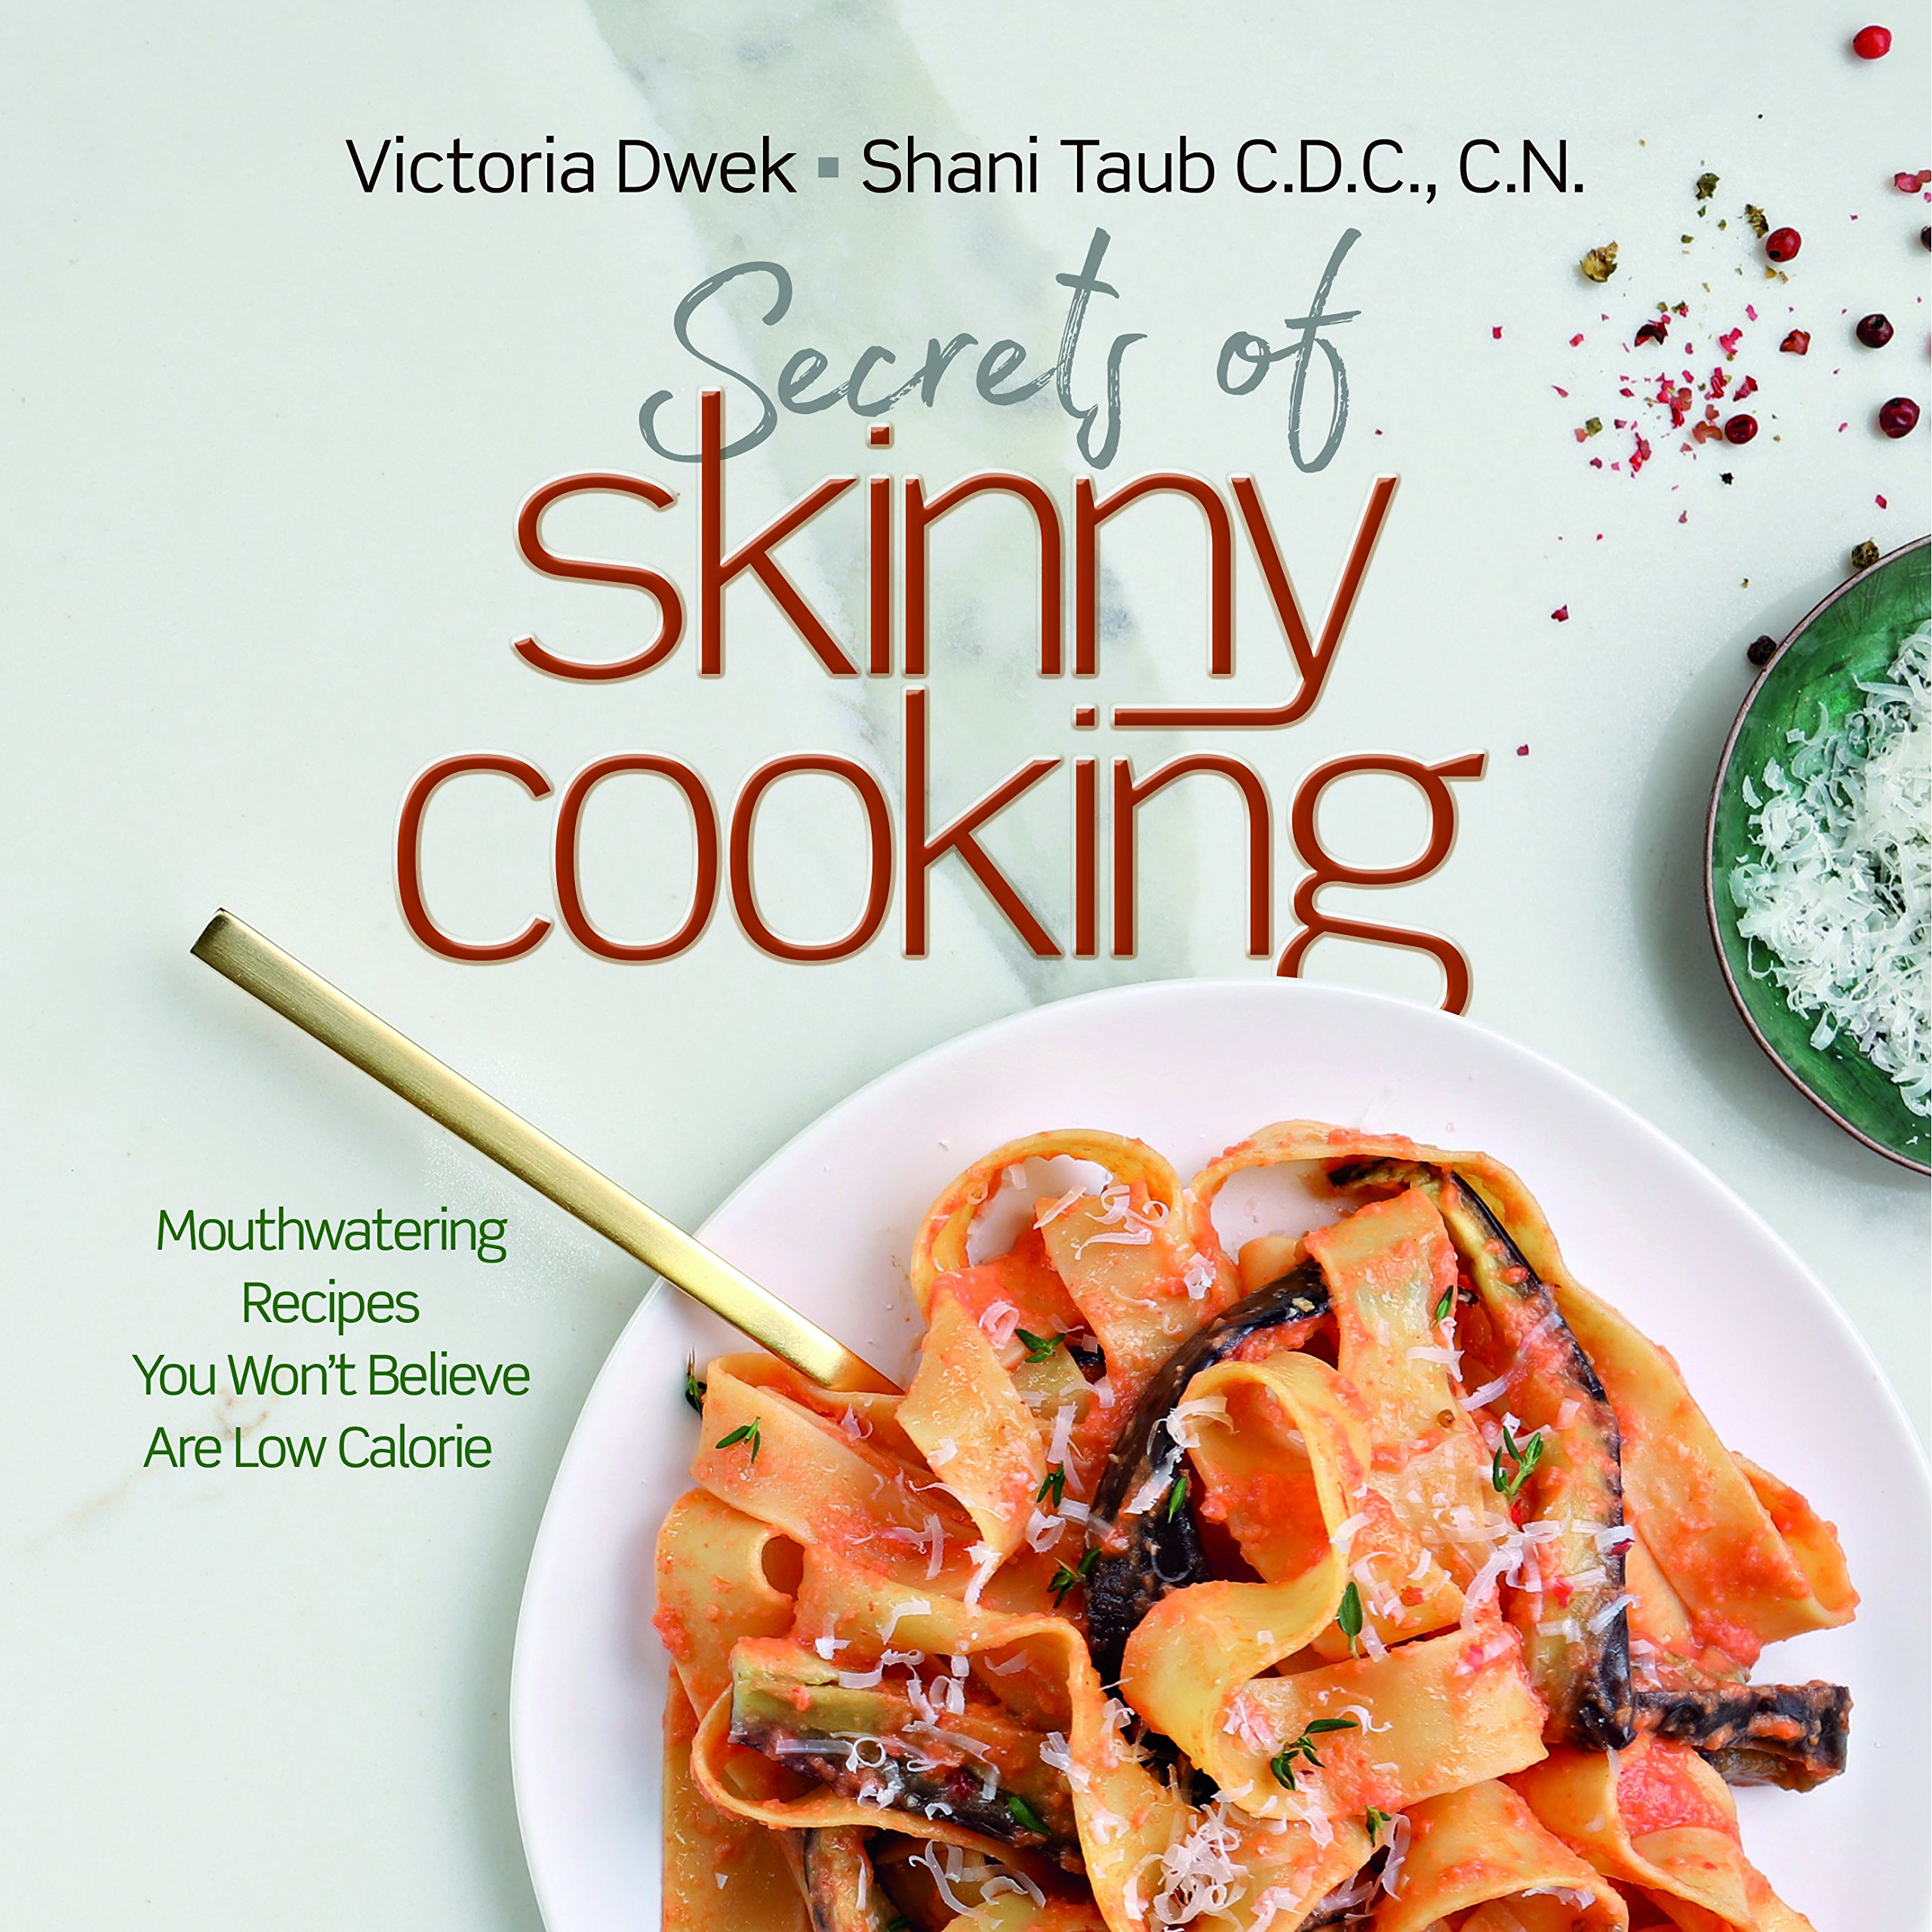 Secrets of Skinny Cooking Cookbook, Secrets of Skinny Cooking Recipes, Skinny Recipes, Low Calorie Recipes